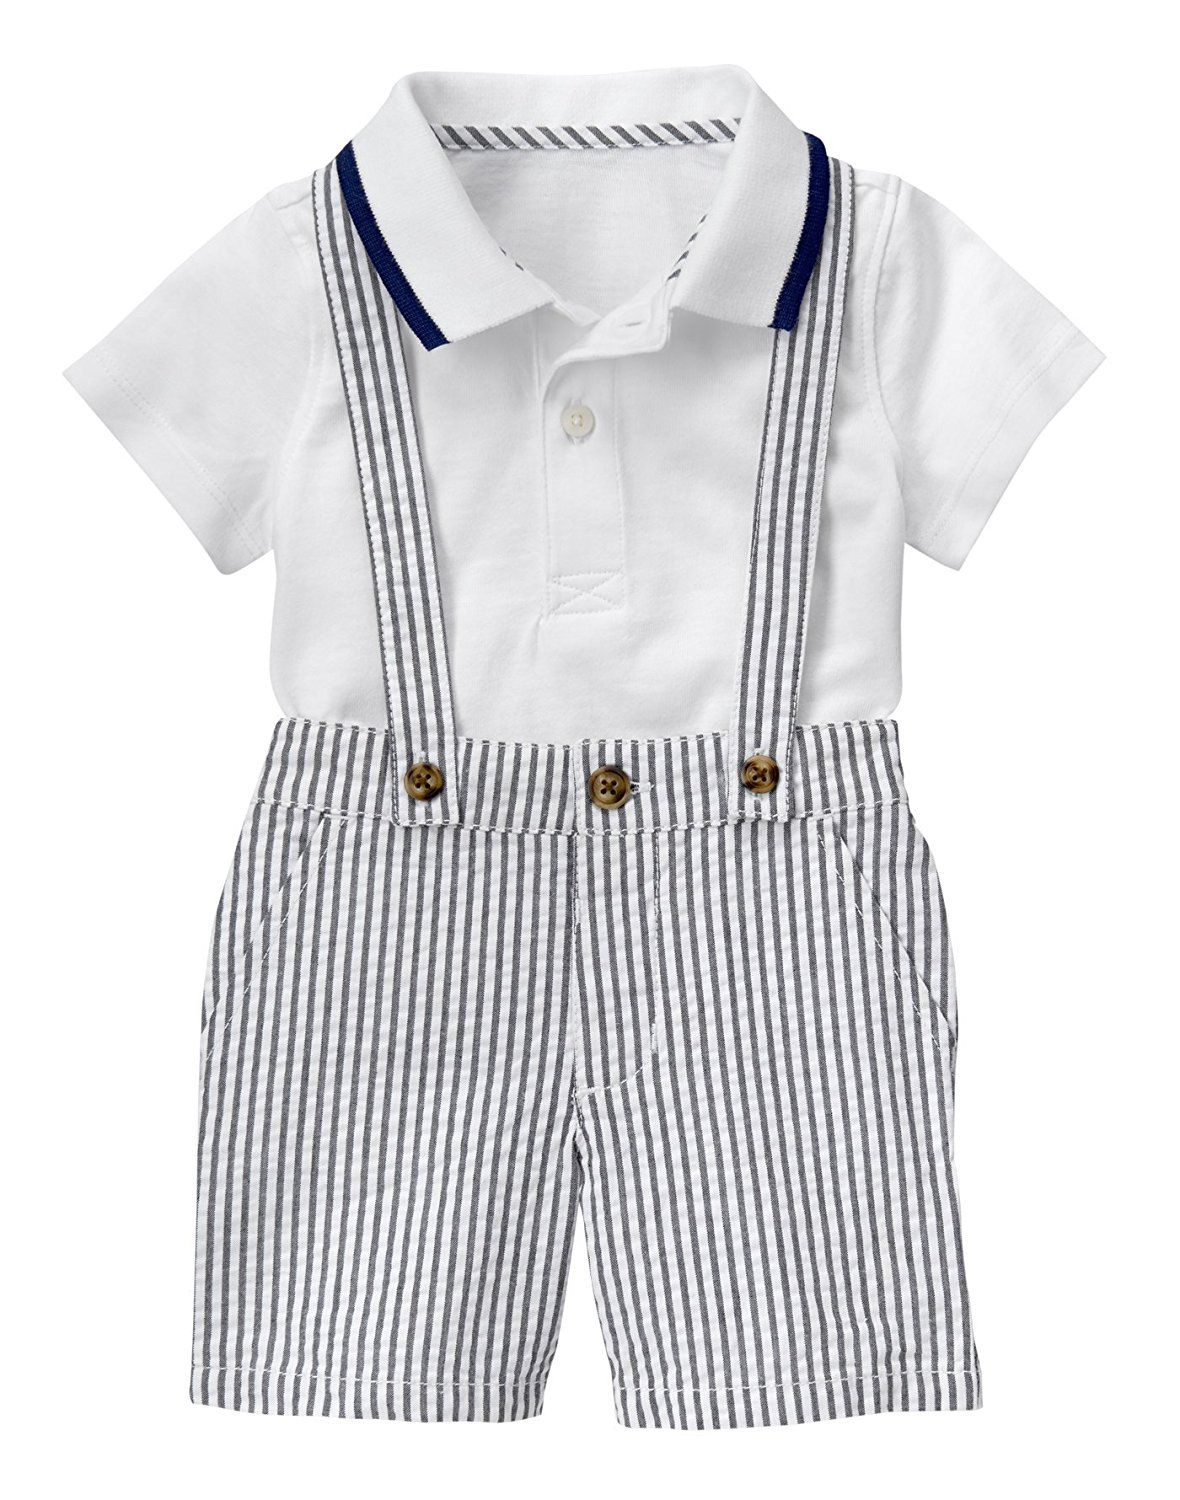 50c57d8a620 Amazon.com  Gymboree Baby Toddler Boys  Seersucker Suspender Set ...